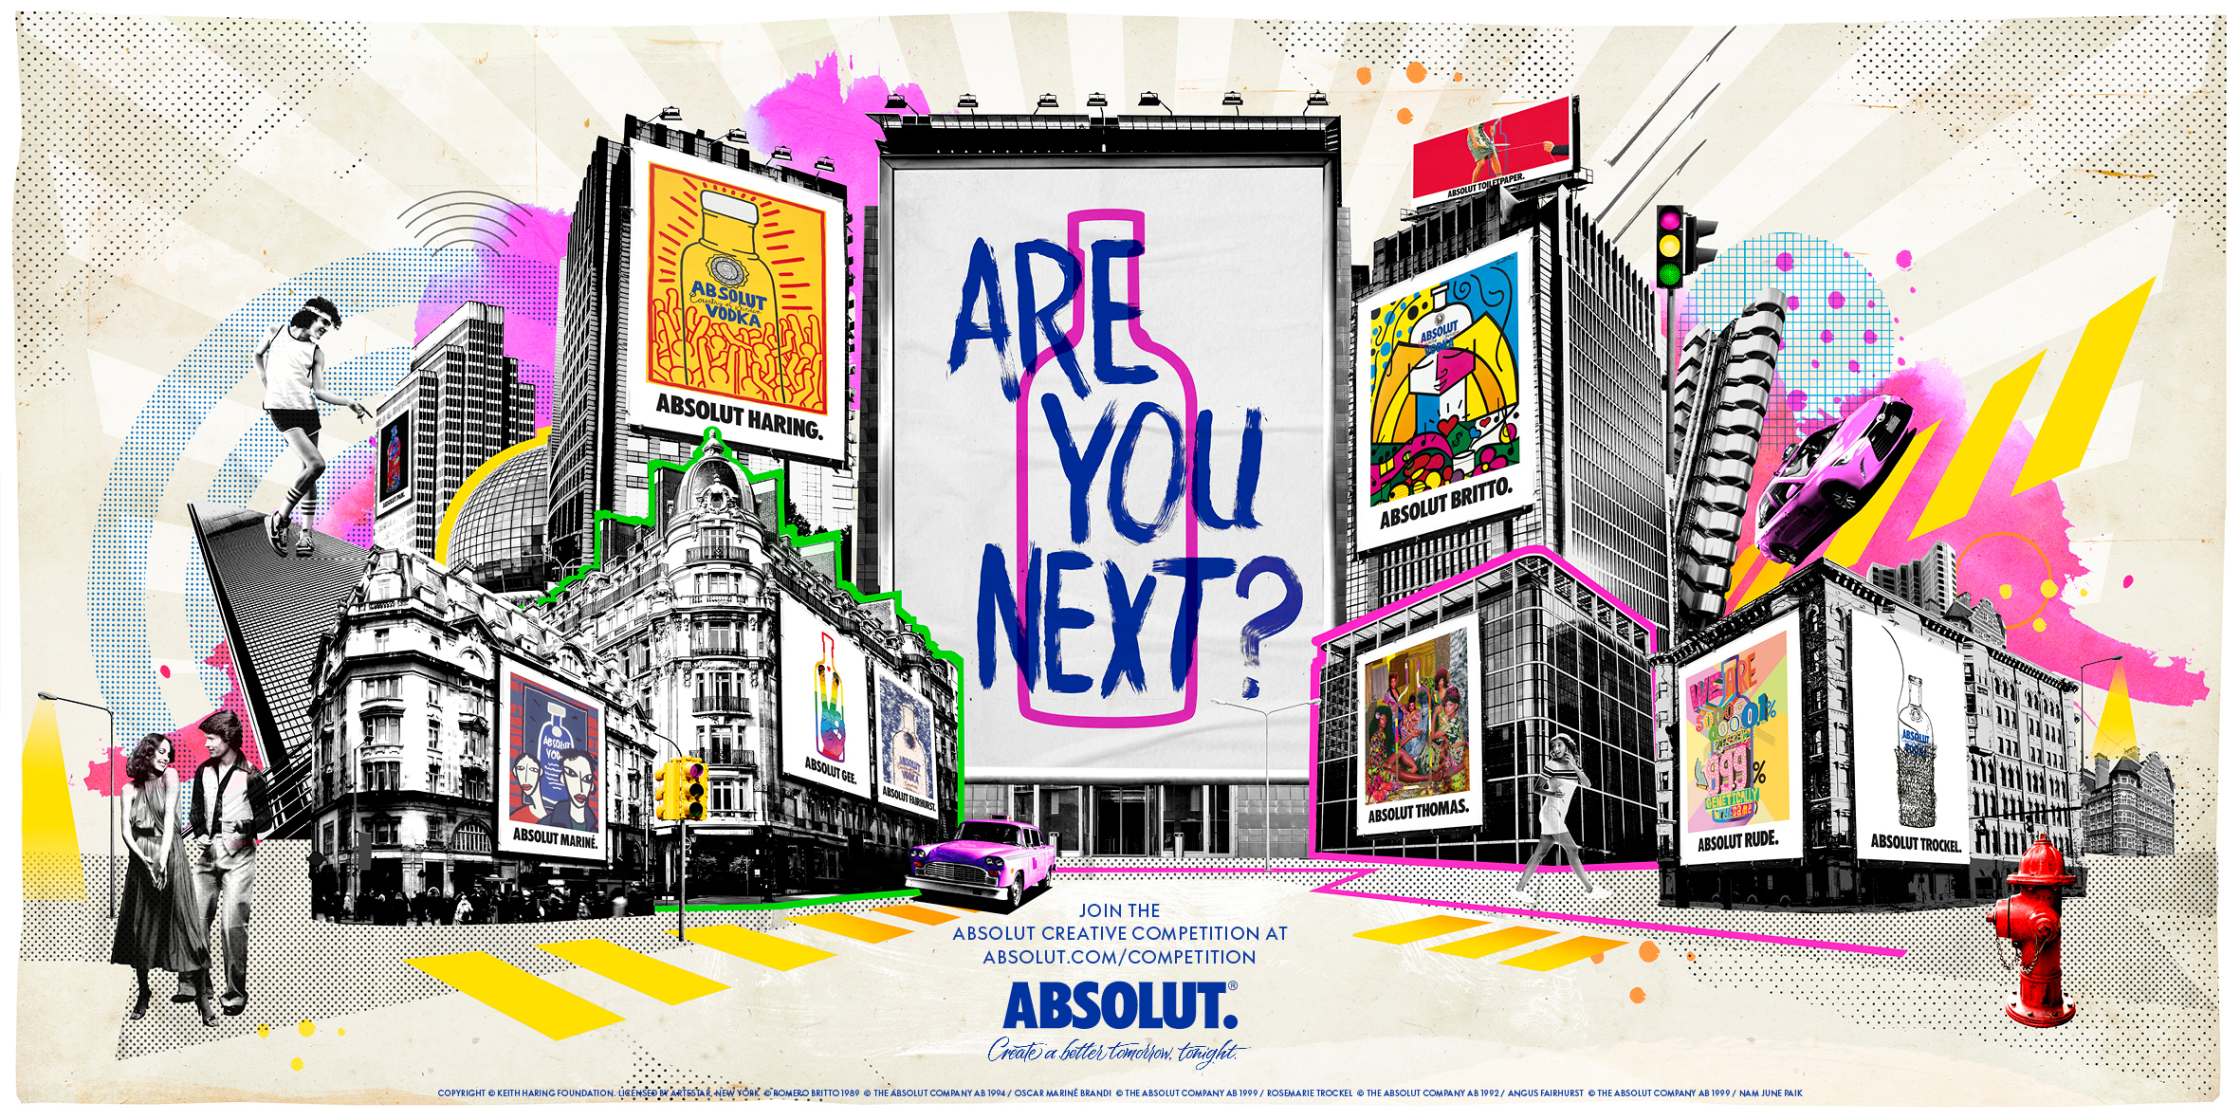 60035_Absolut_Competition_RGB_48Sheet.jpg